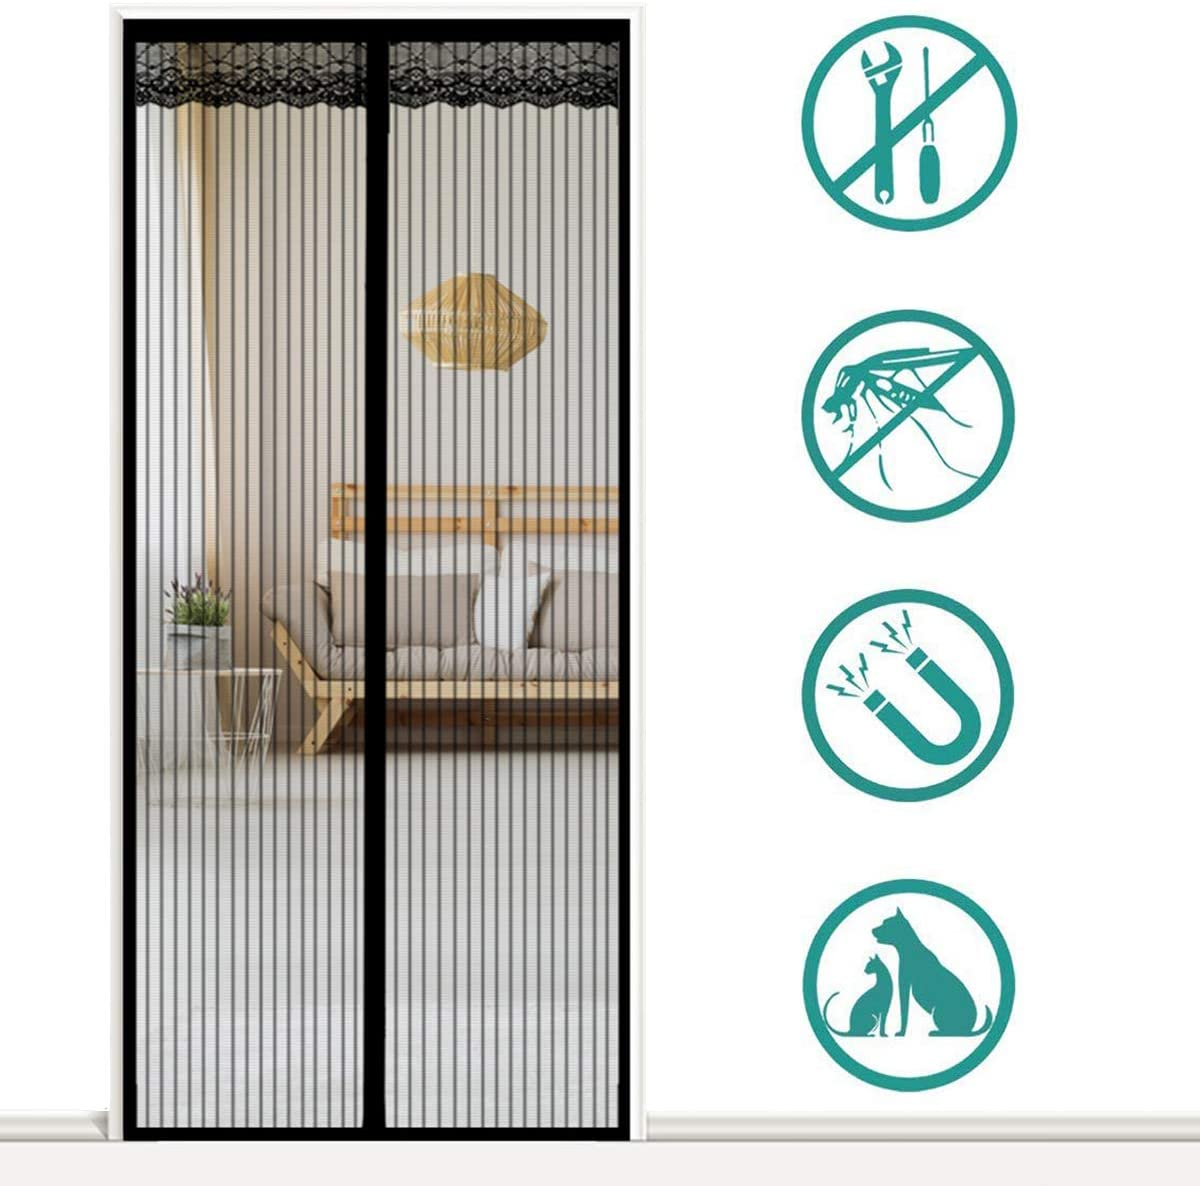 Magnetic Screen Door for Sliding Glass Door Brown 70x190cm Mesh Screen Door Anti Mosquito Bugs with Heavy Duty Mesh Curtain for Keep Bugs Fly Out